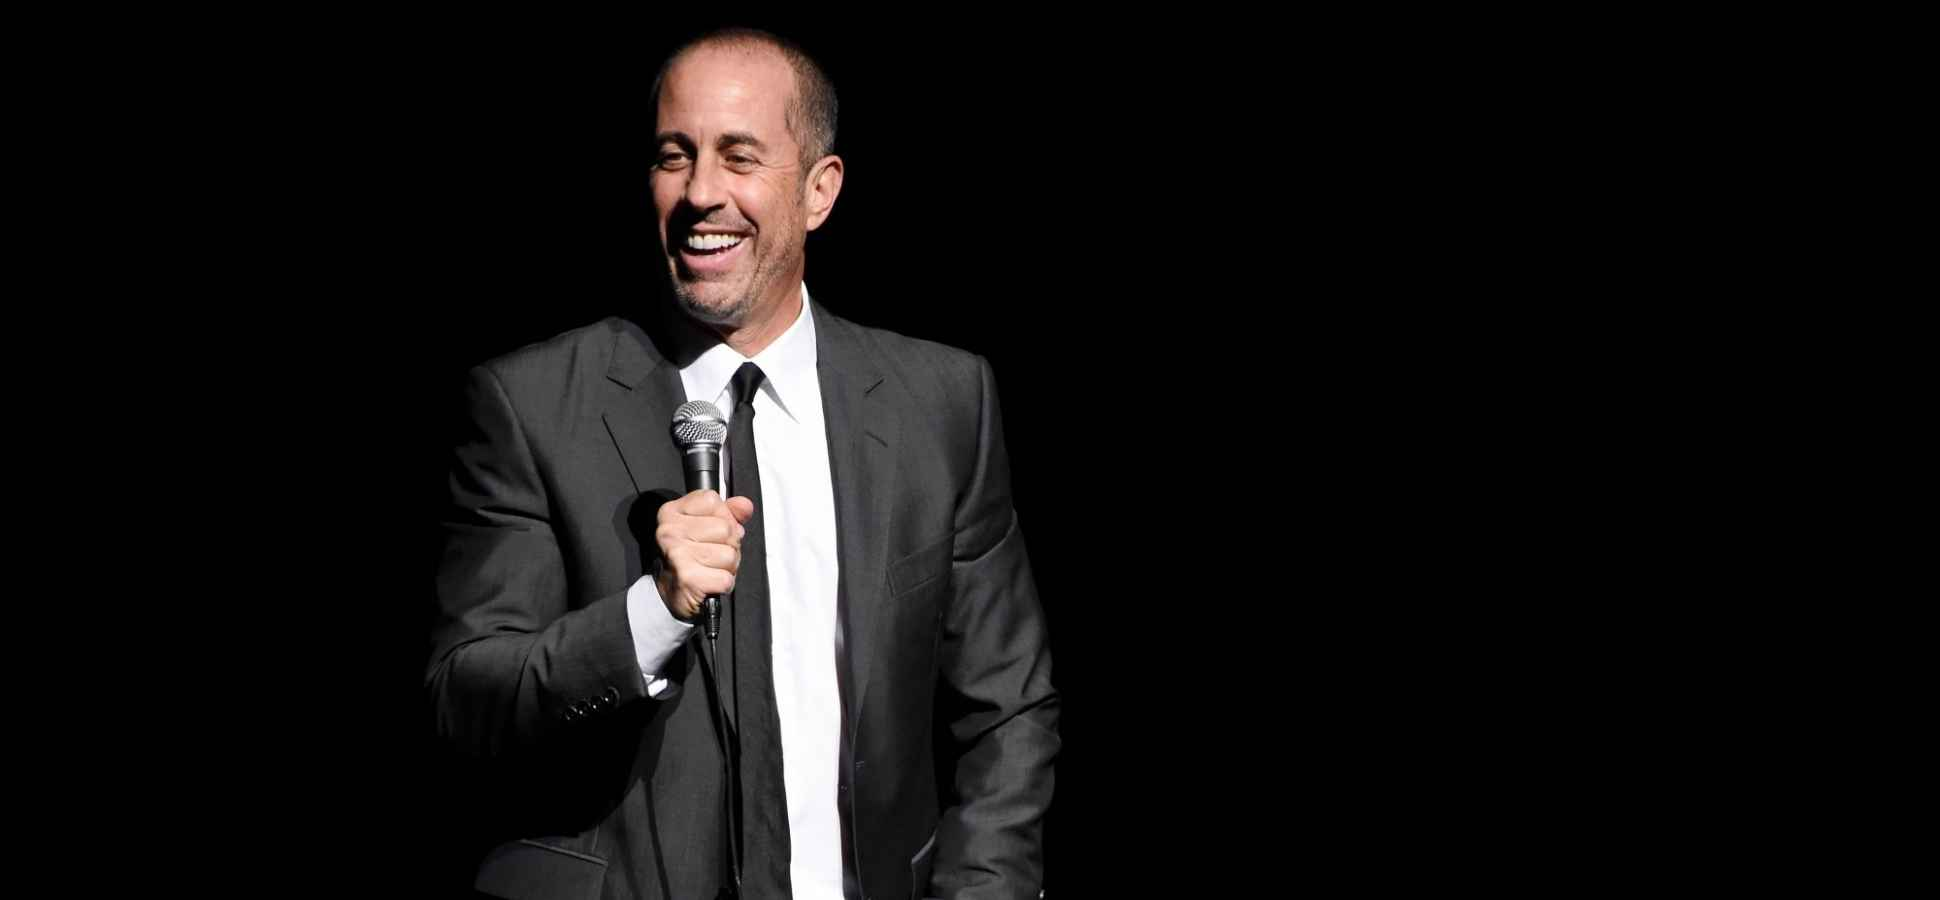 5 Things Exceptionally Funny People Do